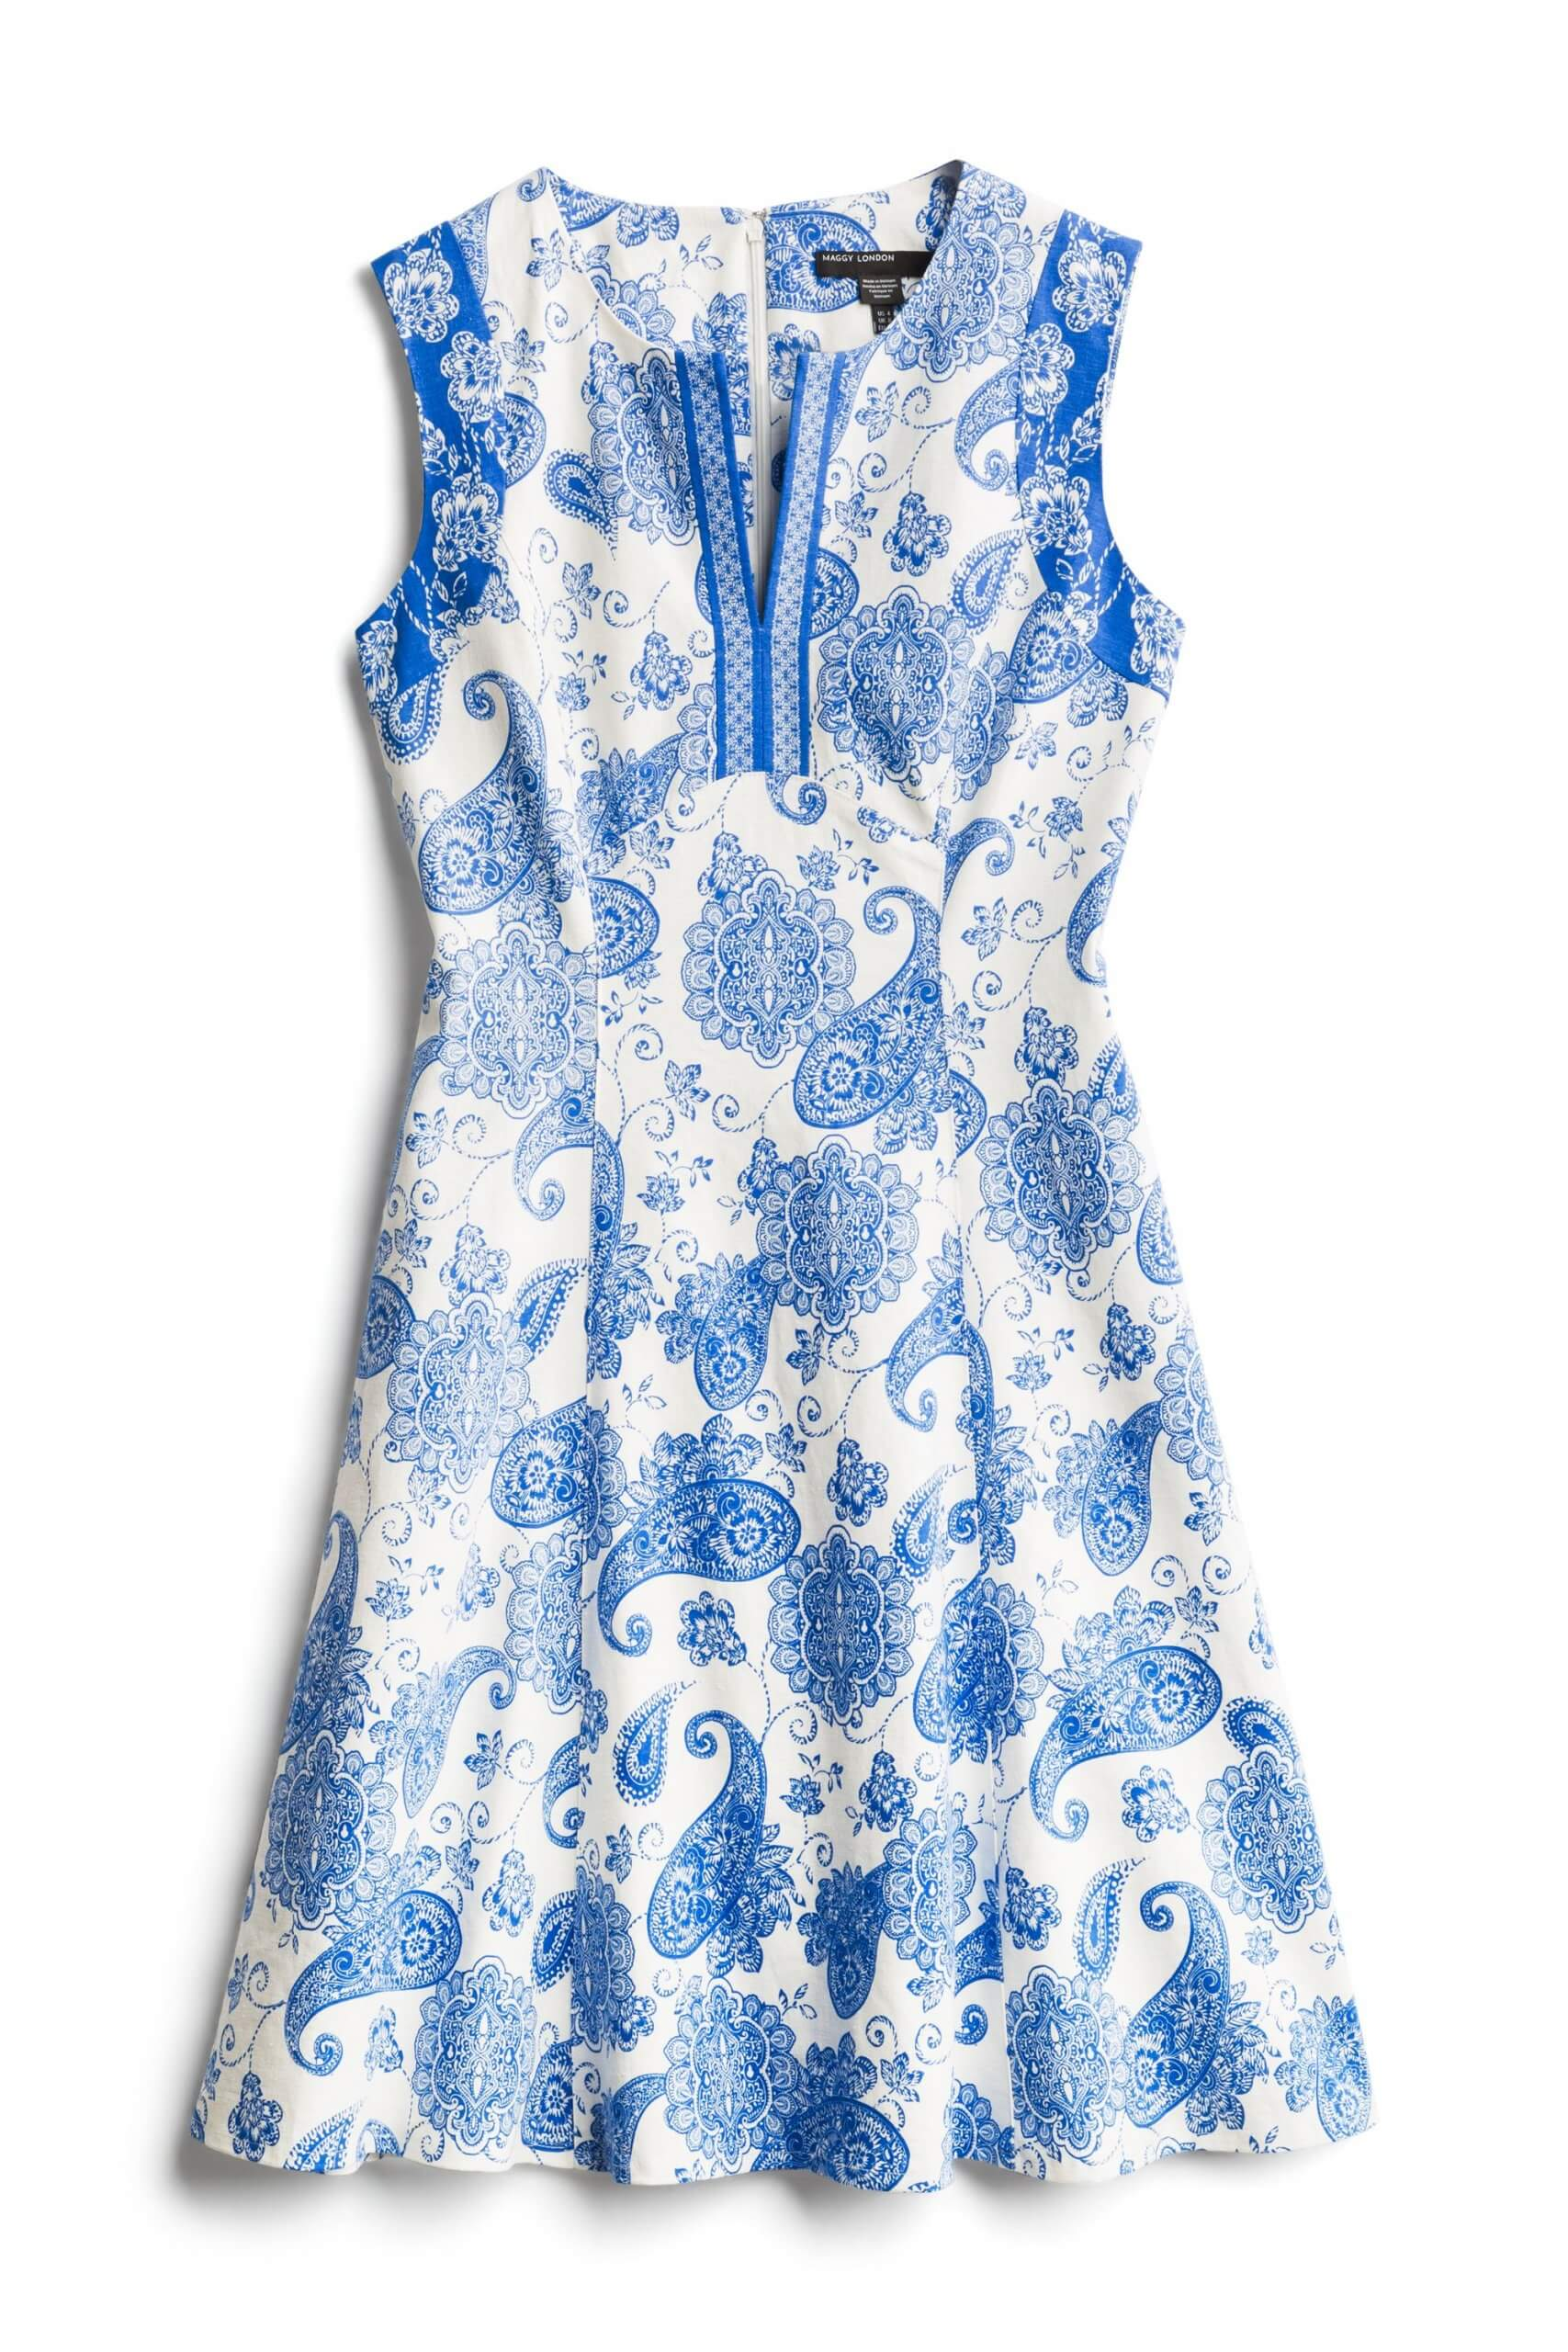 Stitch Fix Women's blue and white paisley print fit and flare dress.